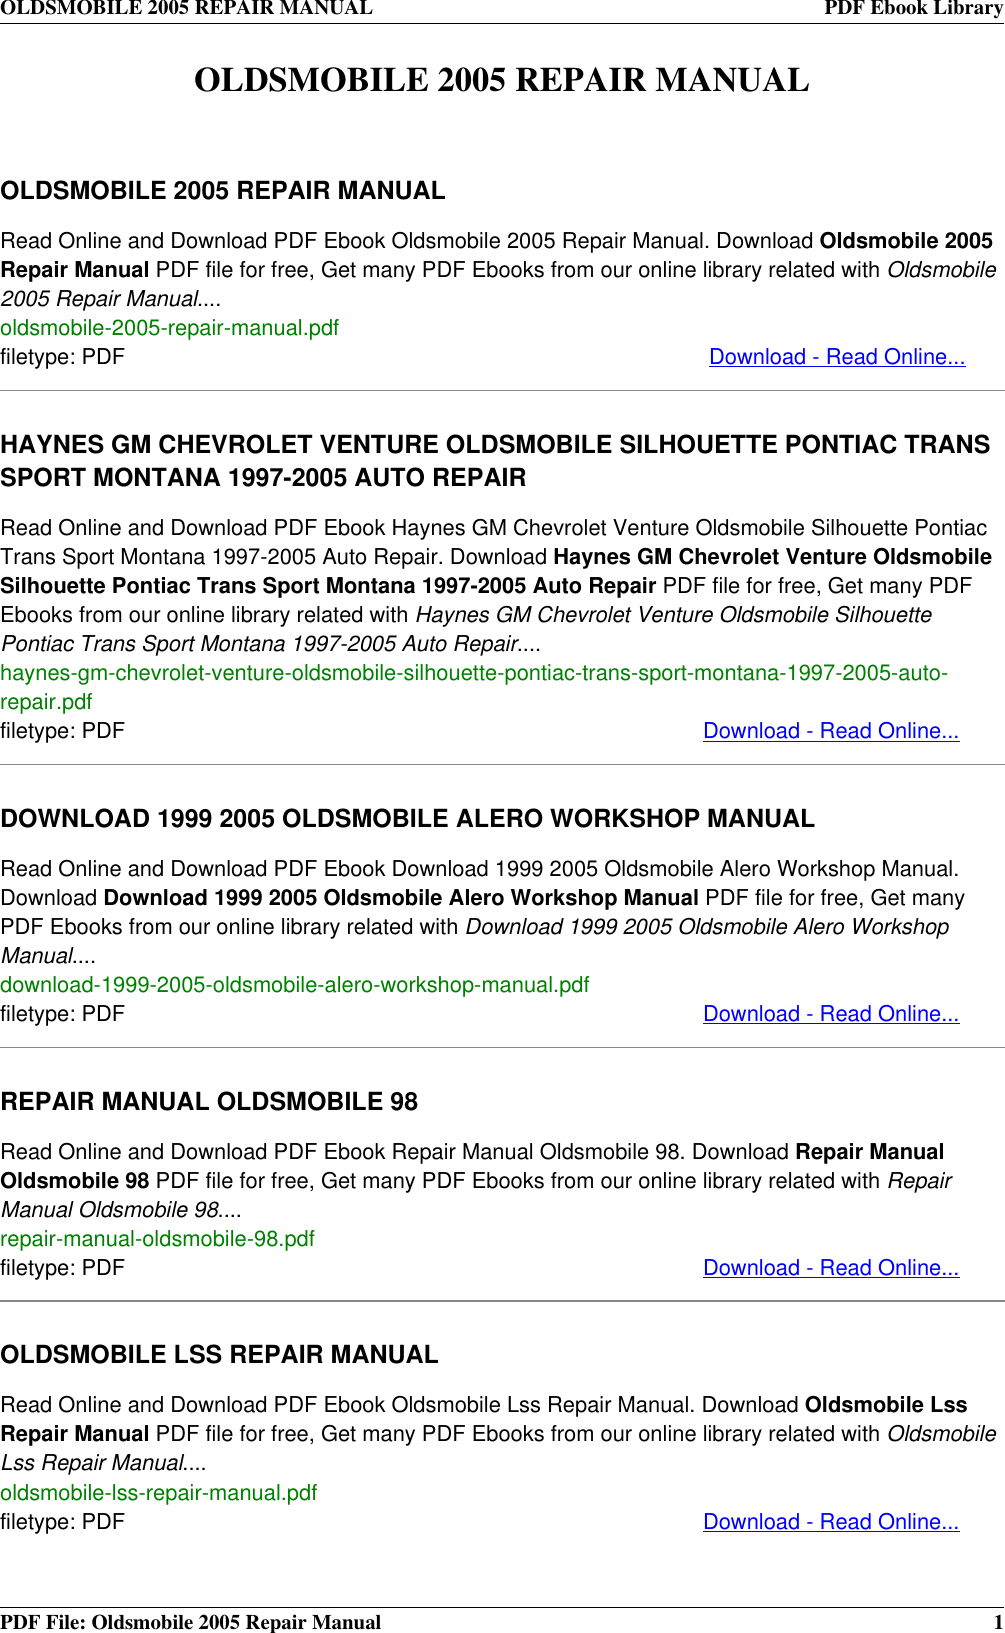 Chevrolet online repair user manuals user manuals array oldsmobile automobile 2005 users manual repair rh usermanual wiki fandeluxe Image collections